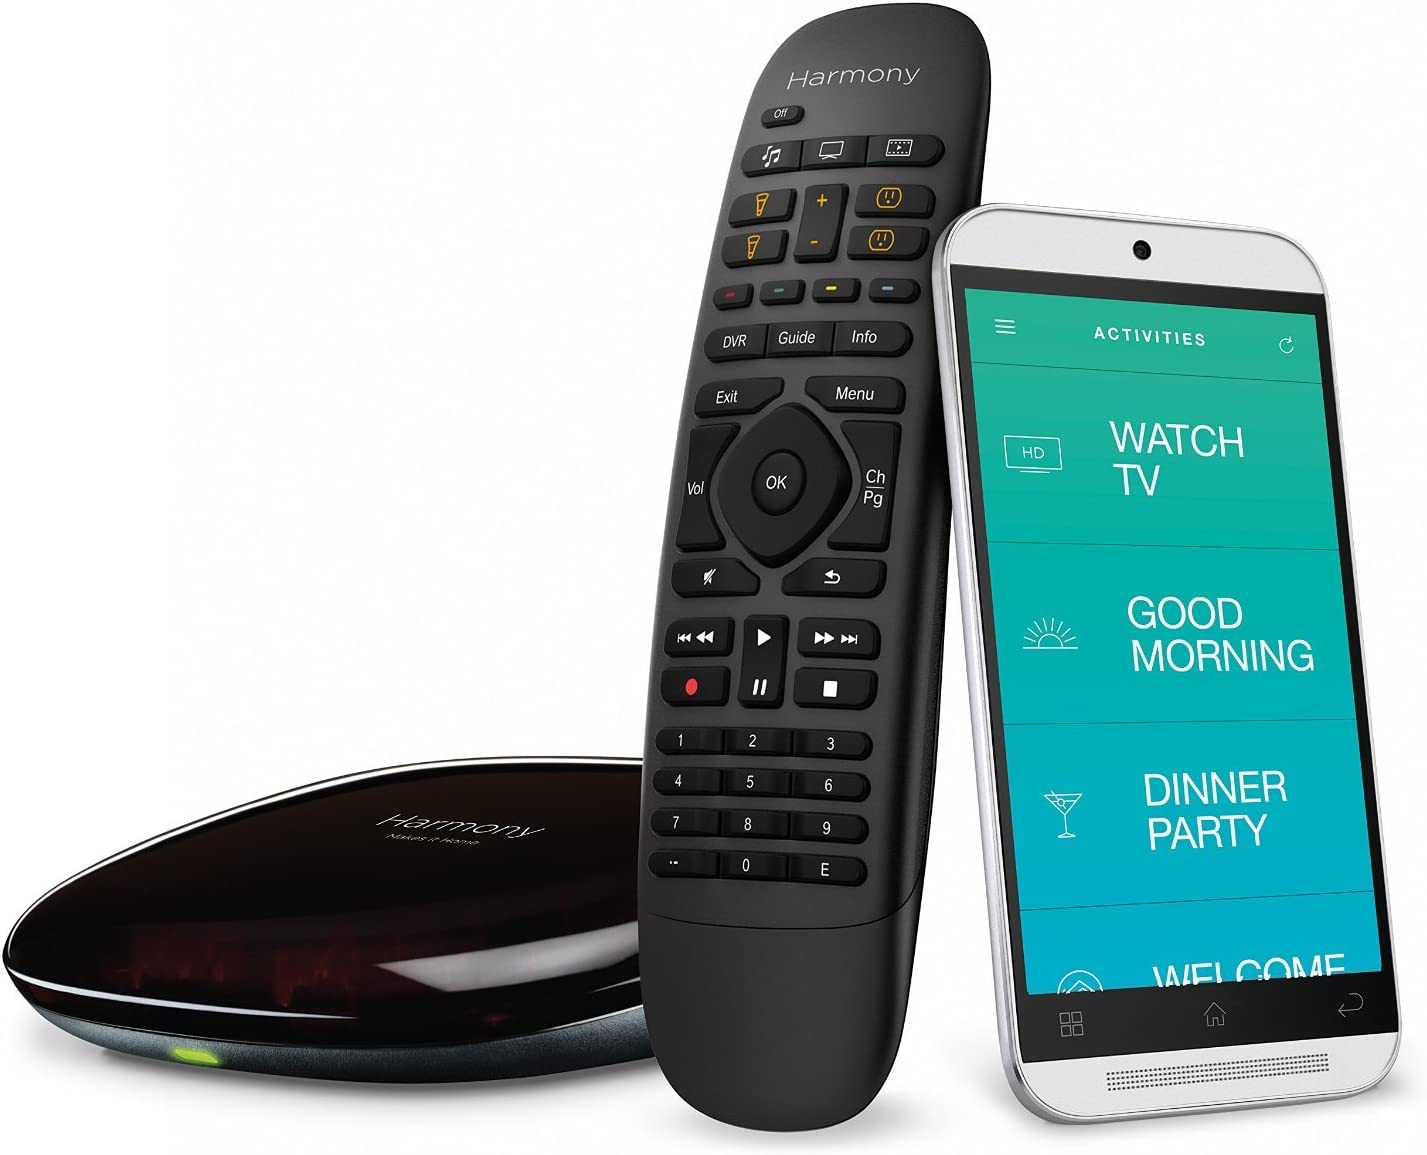 Logitech Harmony Home Control - 8 Devices (Black) (Renewed)